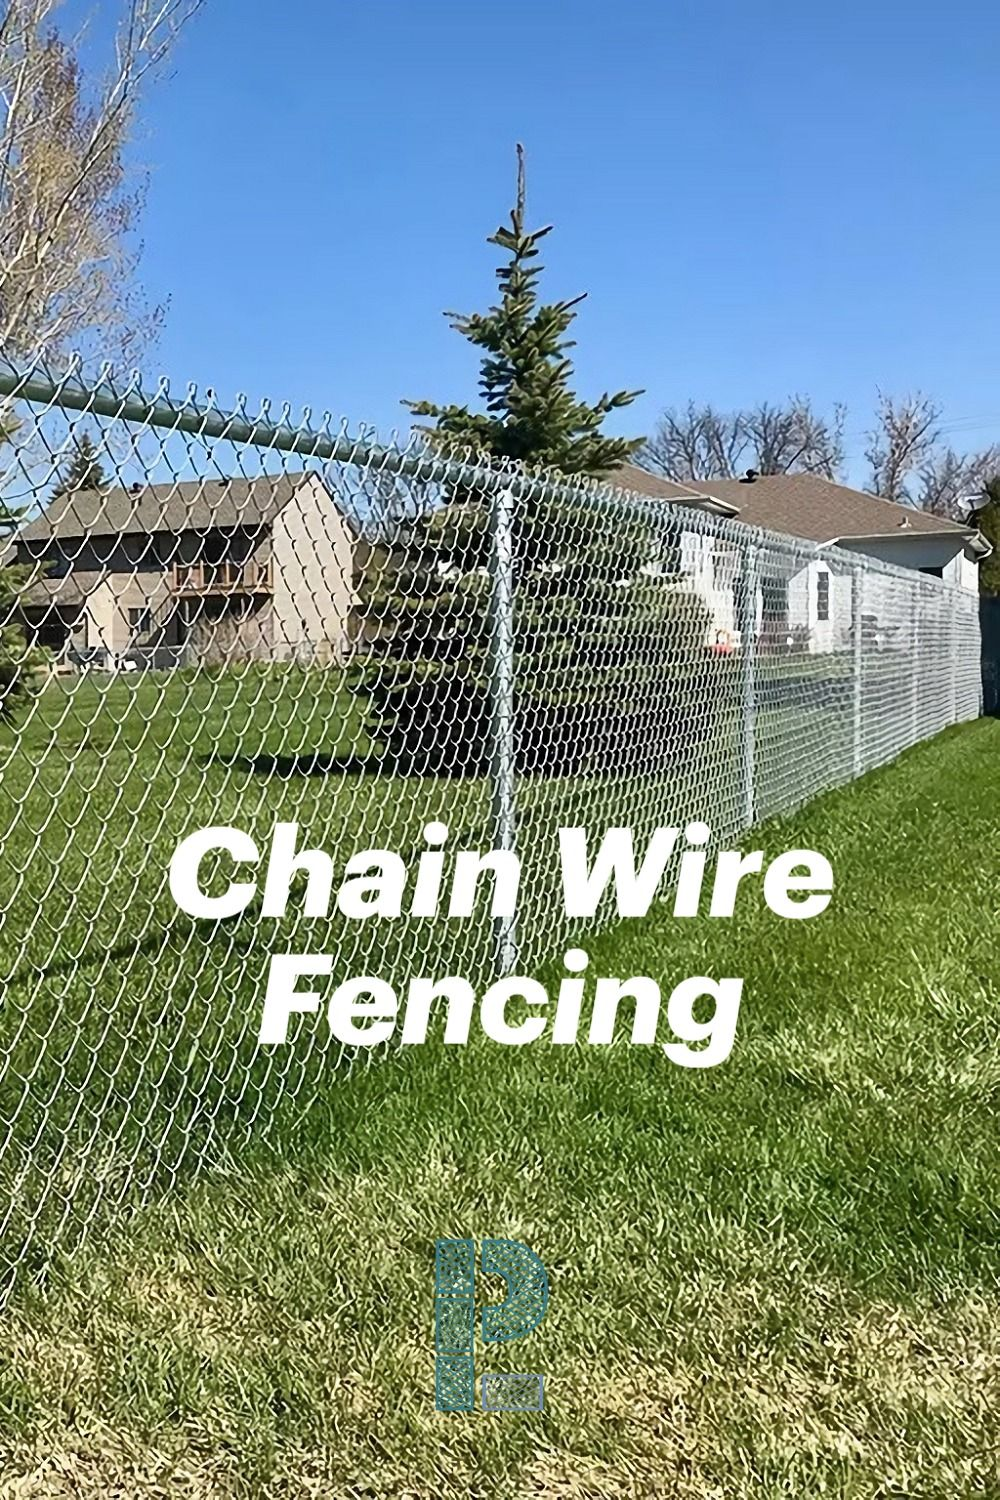 Cost Of Chain Link Fencing Per Metre Cyclone Wire Fence Price Chain Link Fence Chain Link Fence Cost Fence Prices